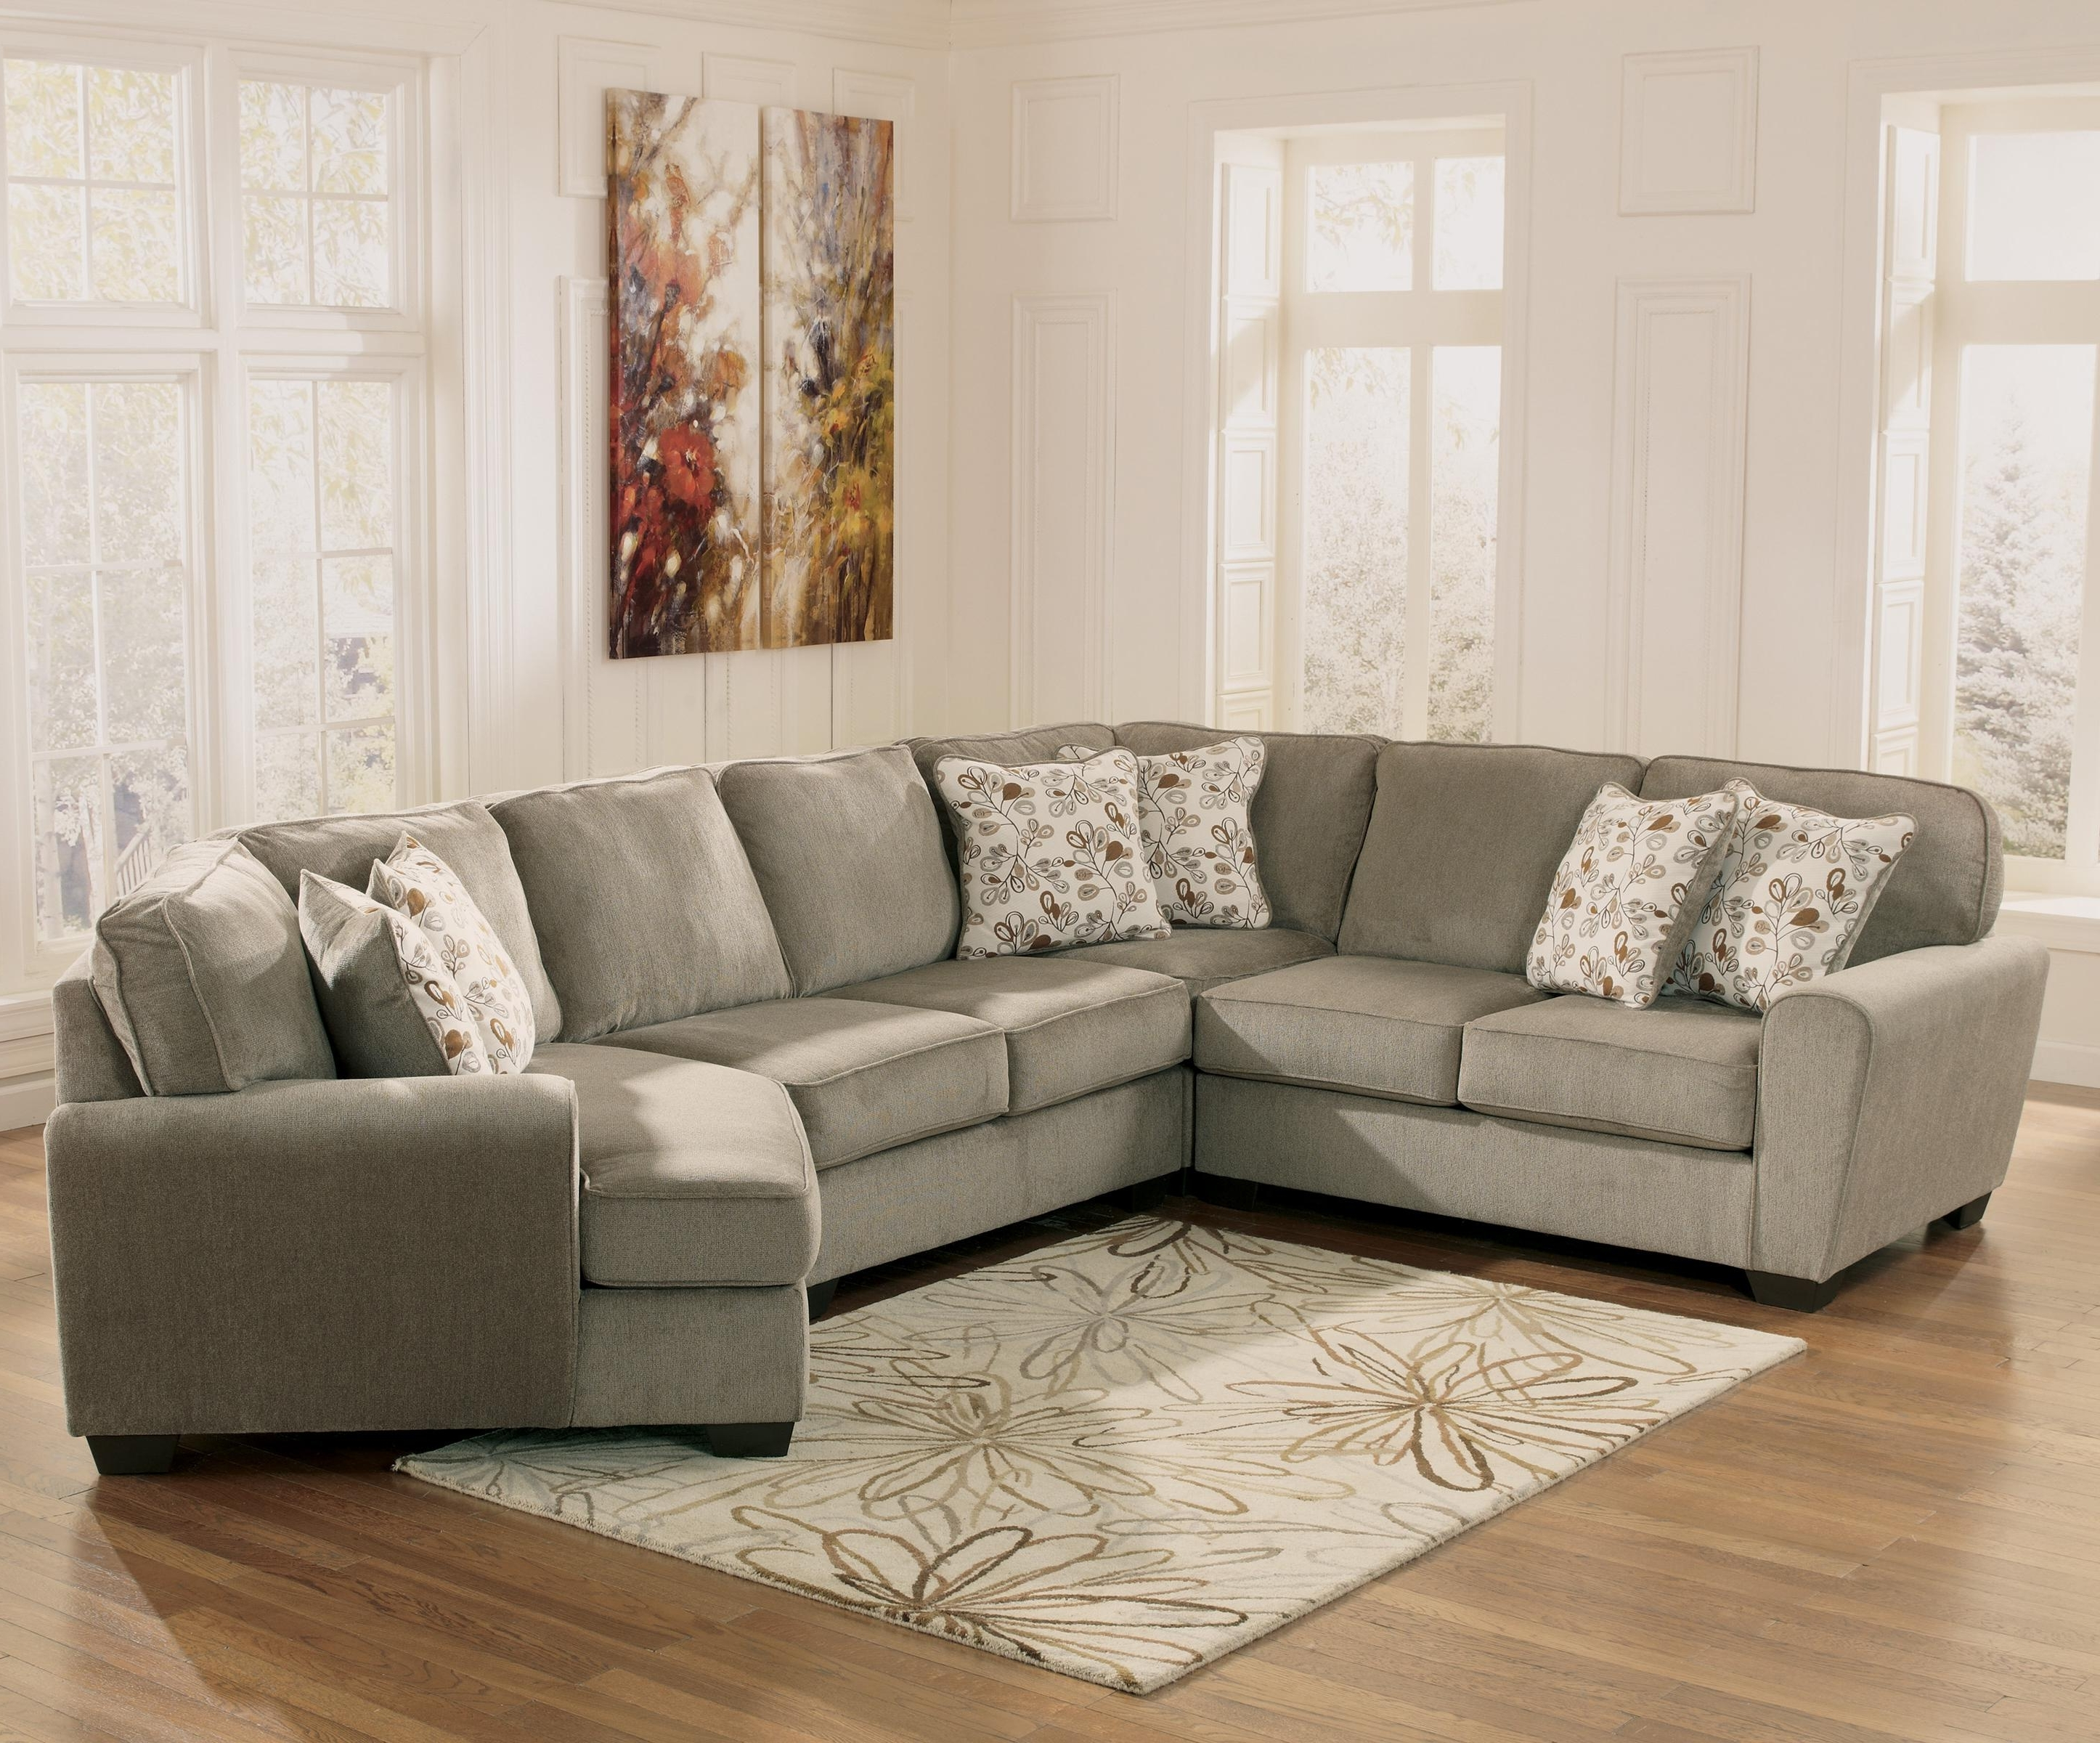 Ashley Furniture Patola Park – Patina 4 Piece Small Sectional With With Regard To Current Green Bay Wi Sectional Sofas (View 1 of 20)